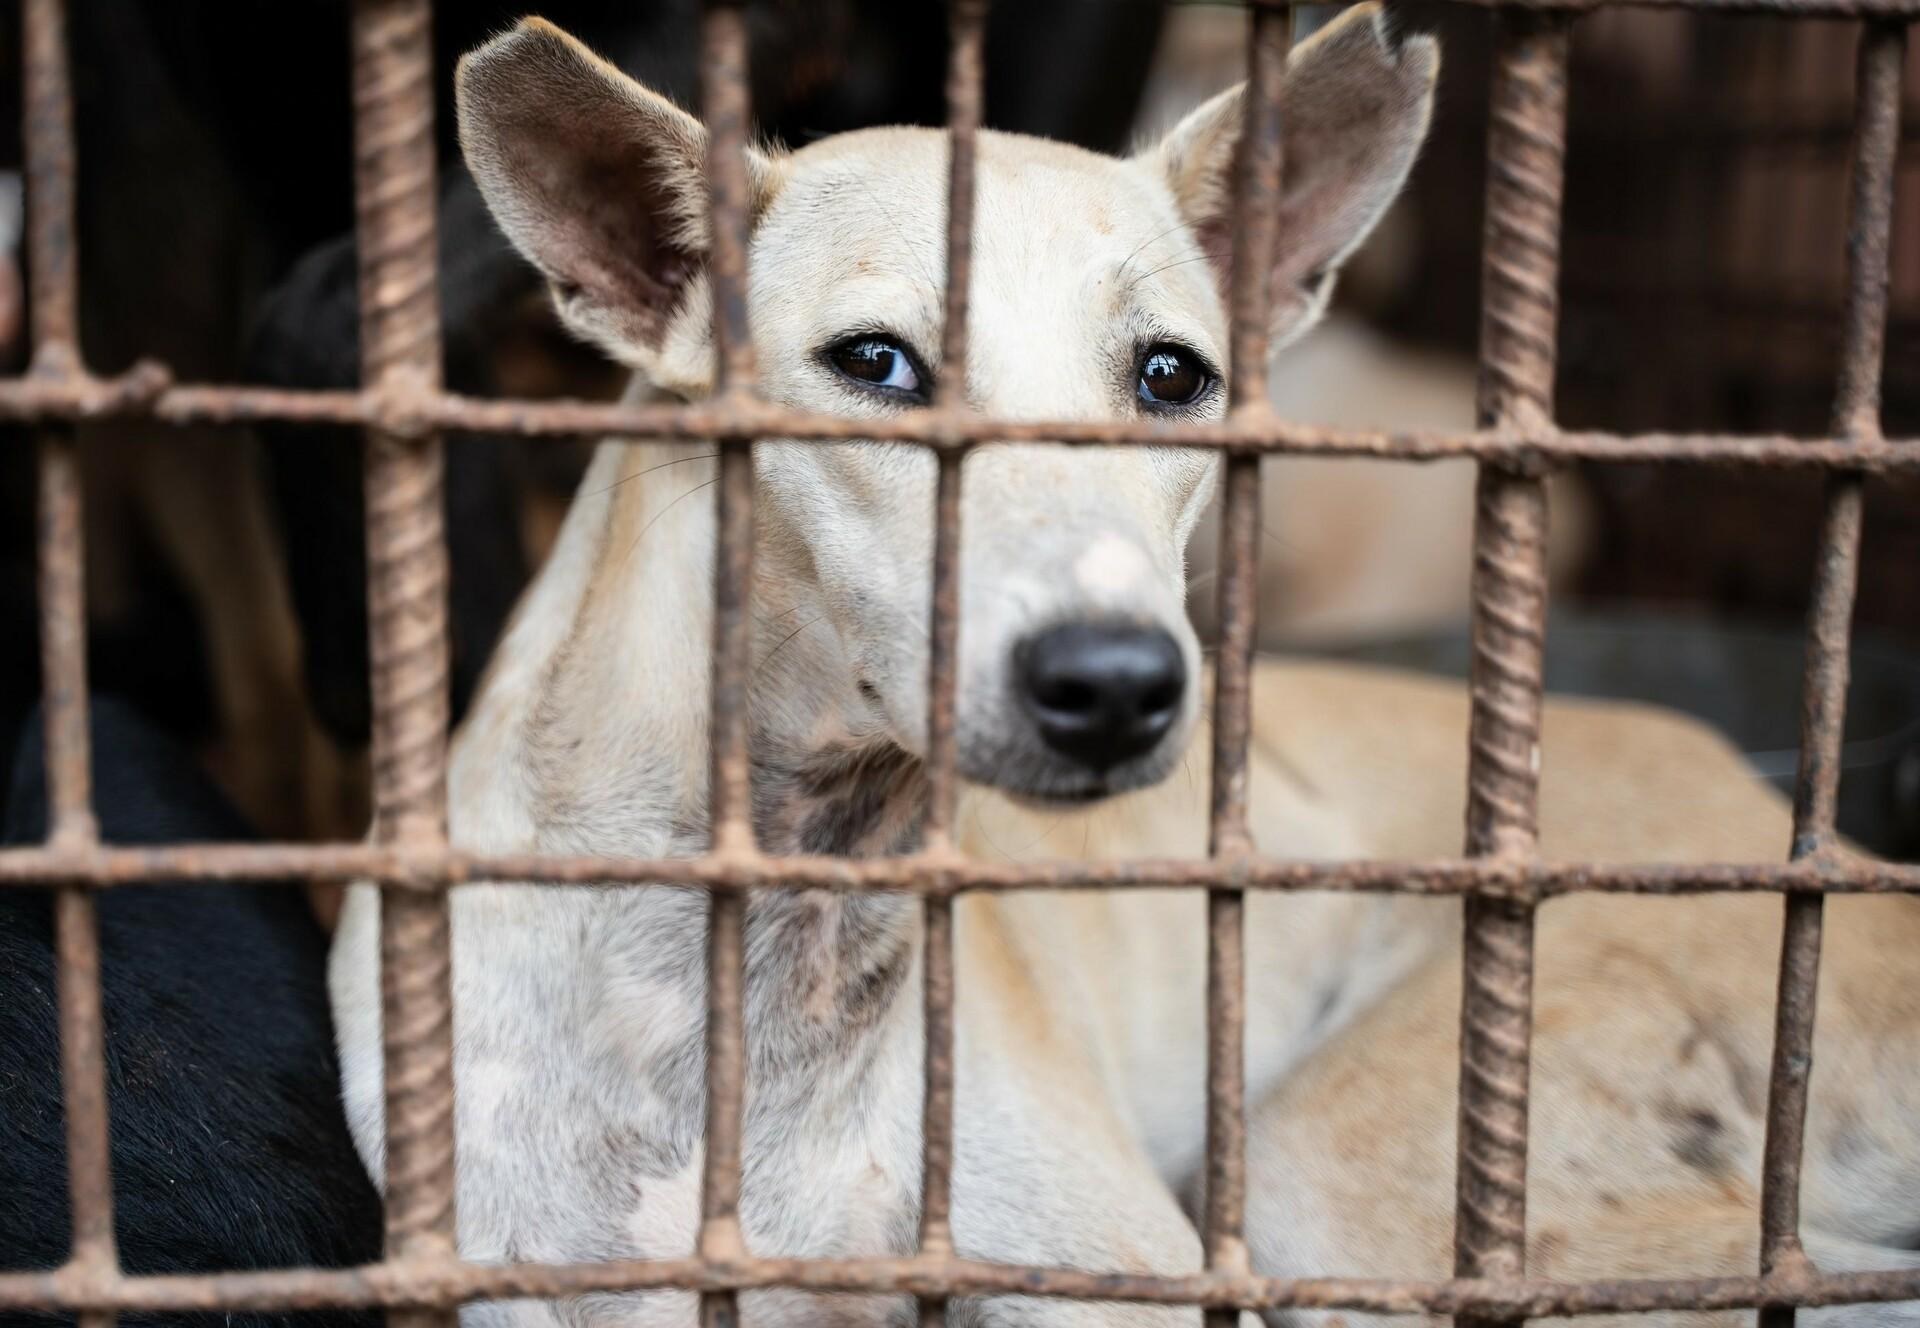 FOUR PAWS shuts down dog slaughterhouse in Cambodia critical to the trade